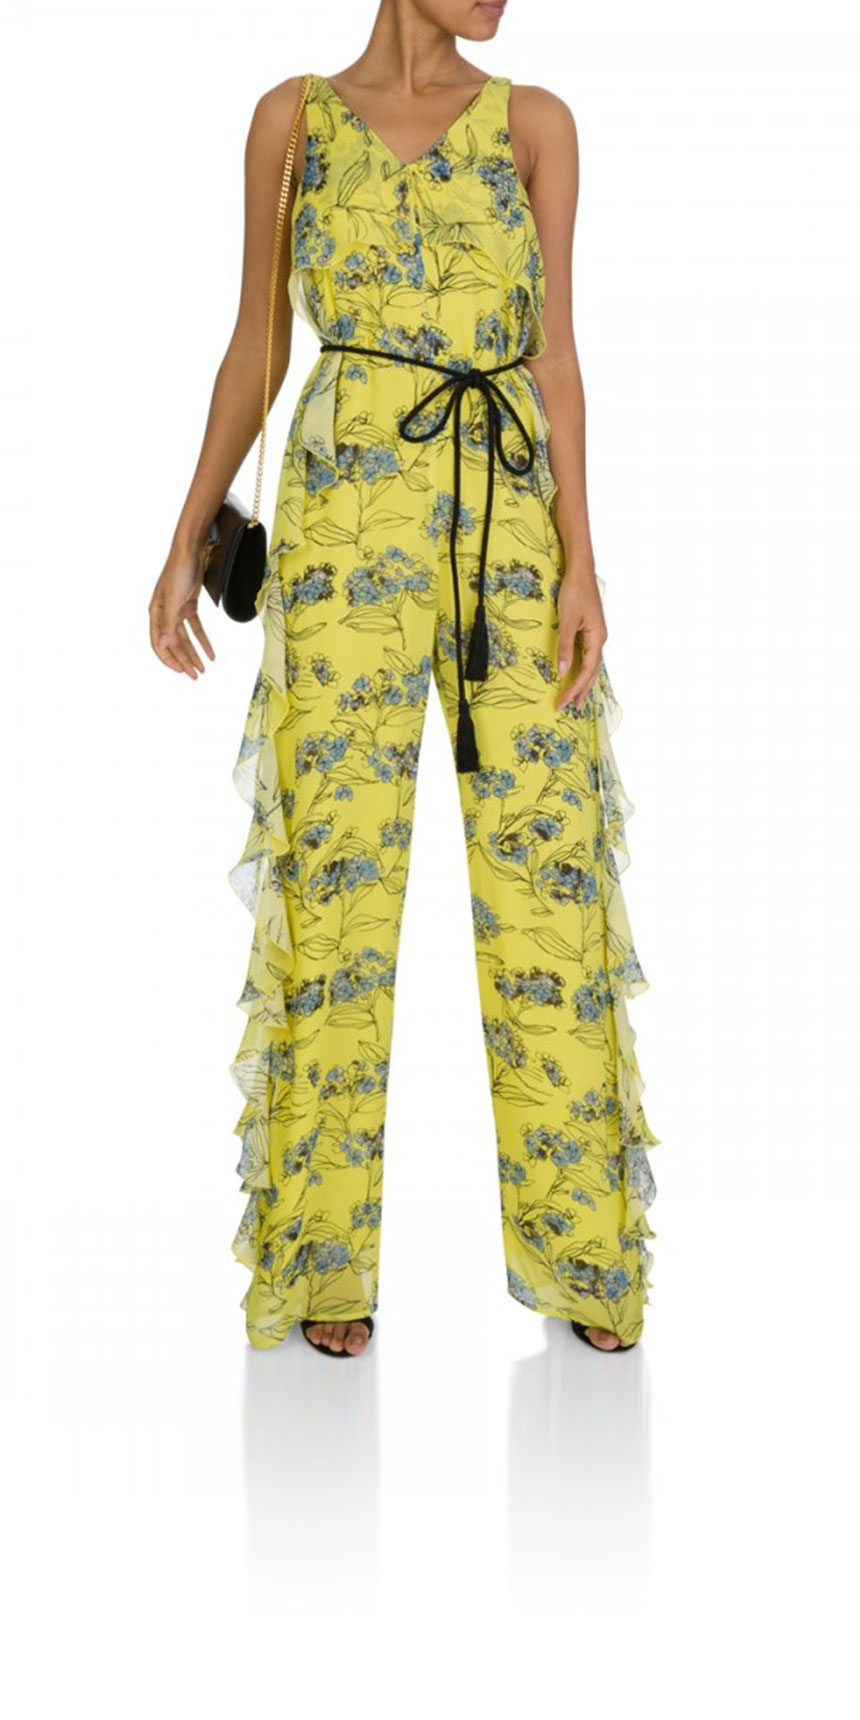 JUMP IT UP….5 Jumpsuits for you!